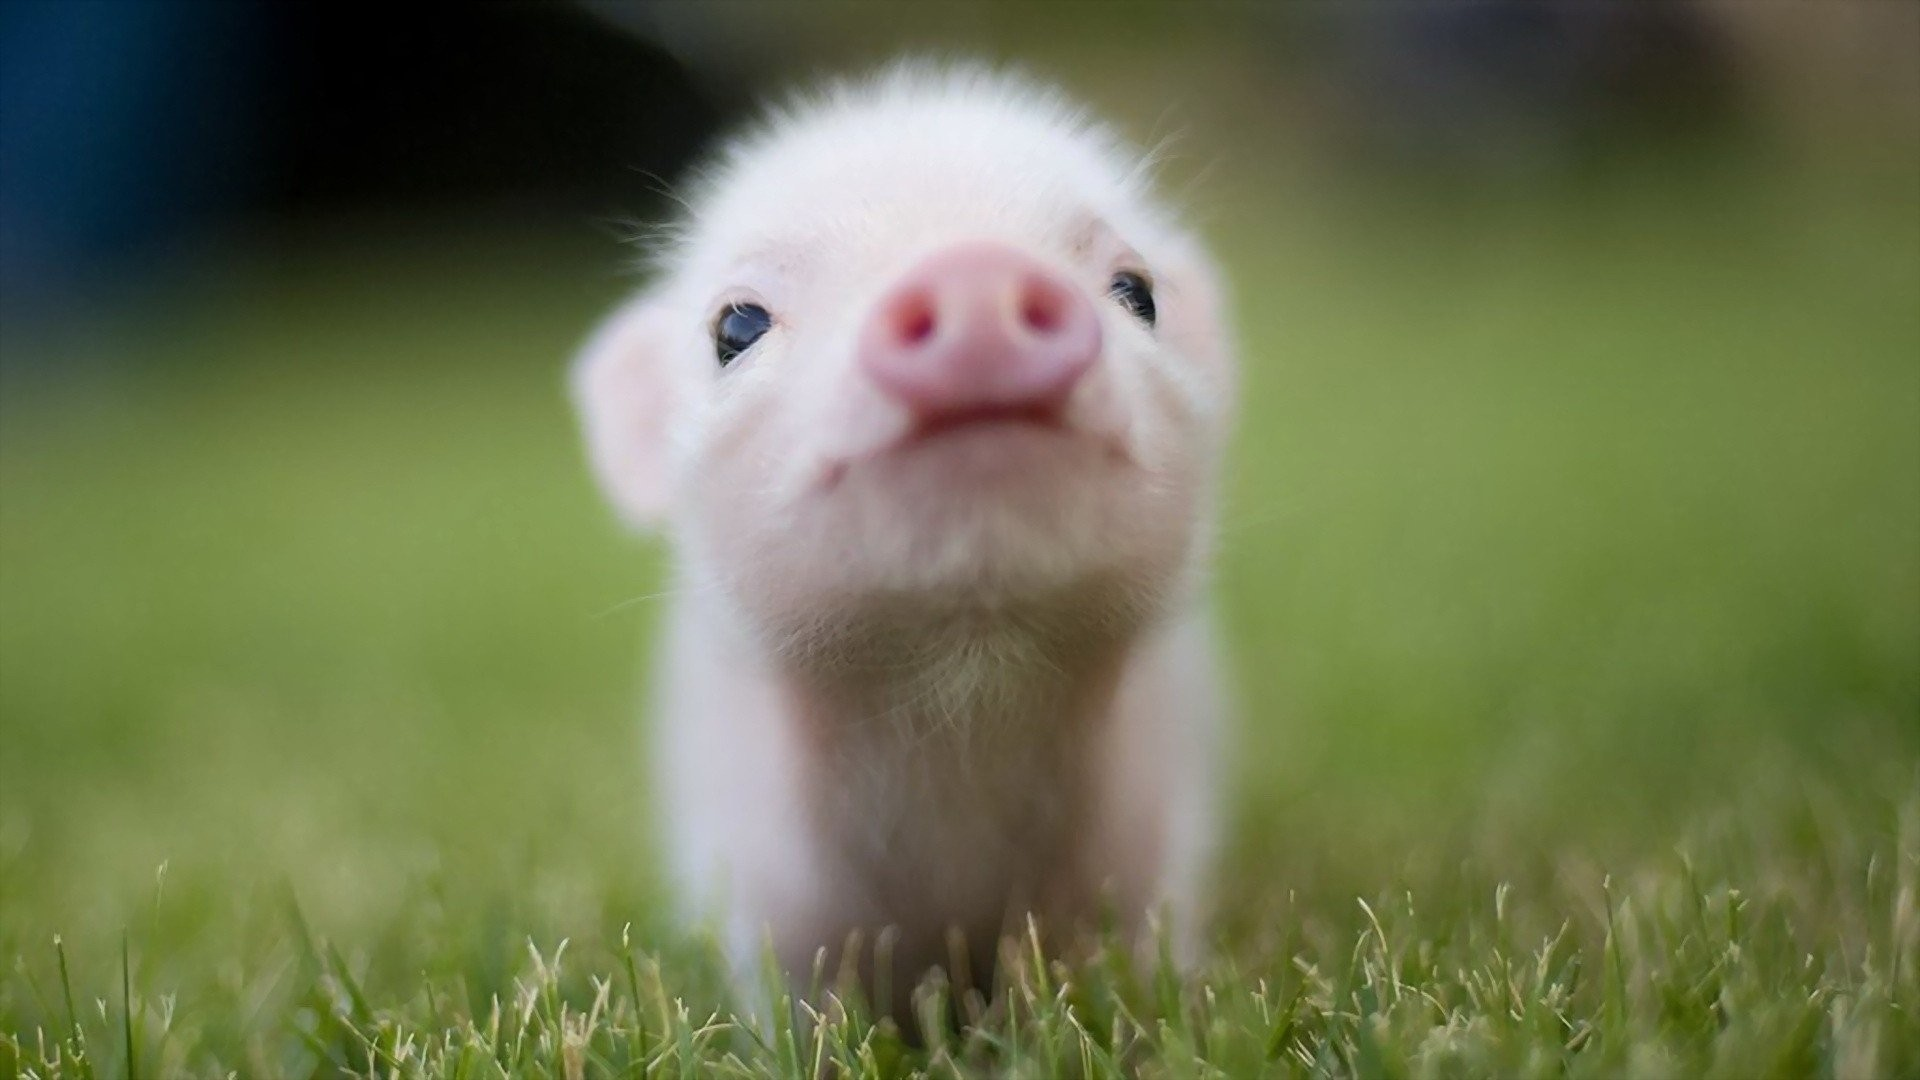 Res: 1920x1080, HD Wallpaper   Background Image ID:235985.  Animal Pig